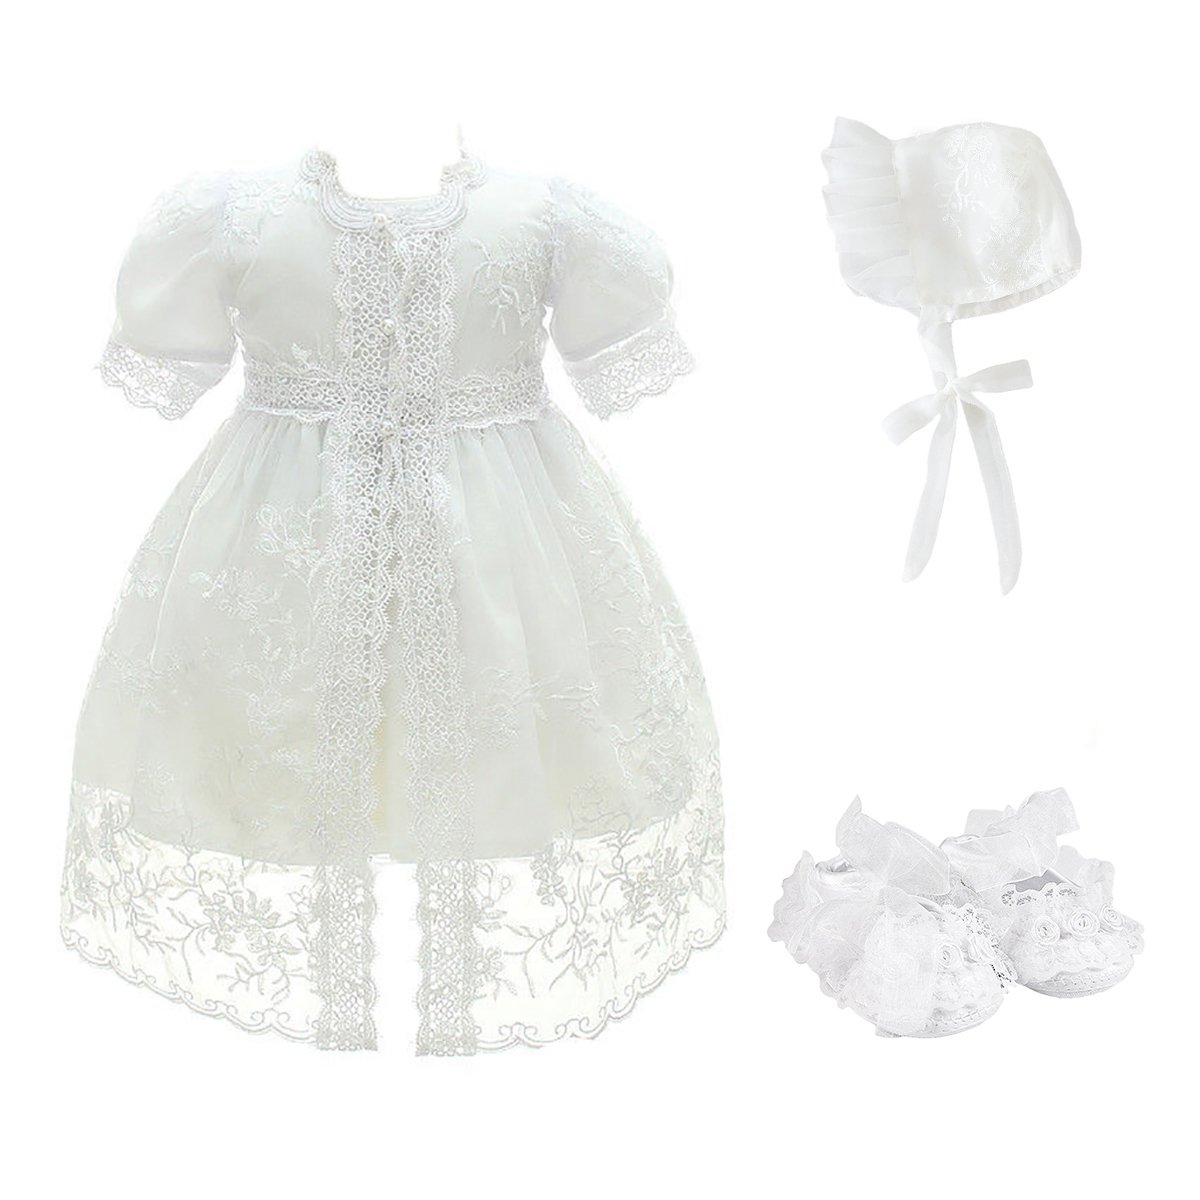 Glamulice Baby Girl Party Dress Christening Baptism Dresses Lace Princess Bow Formal Gown